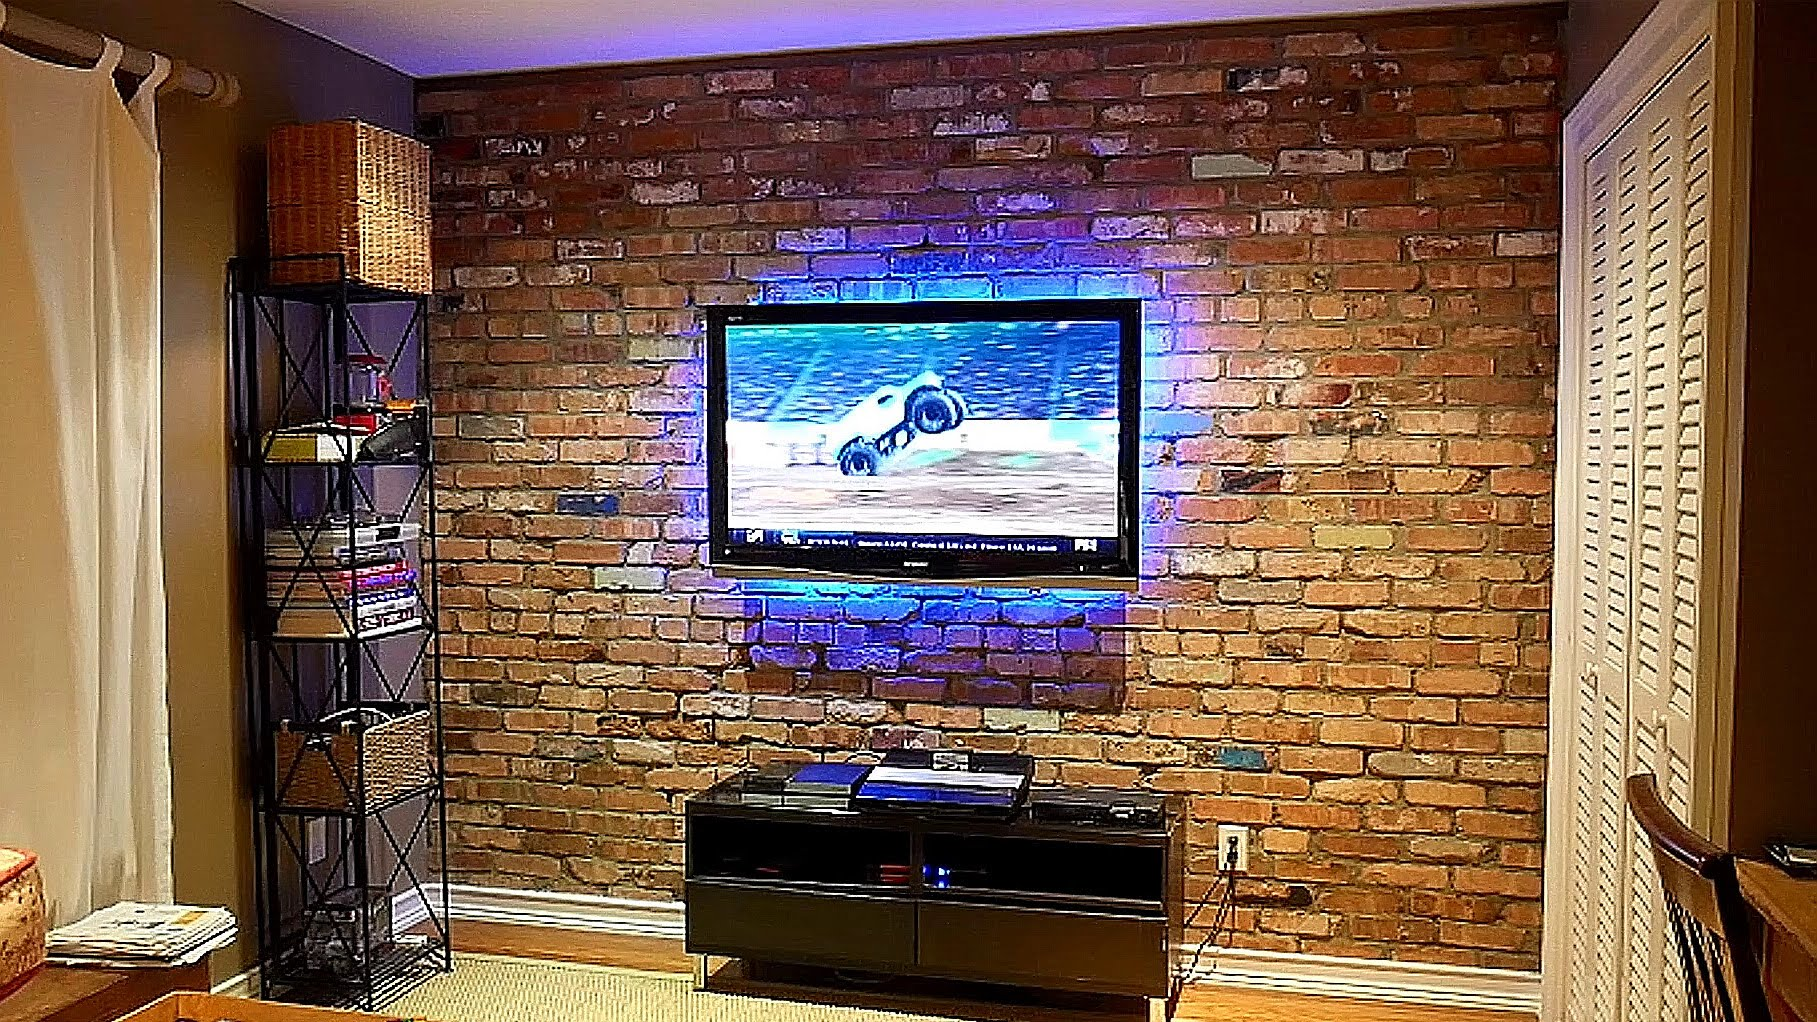 How To Build An Exposed Brick Veneer On An Interior Wall Diydecor Crafts